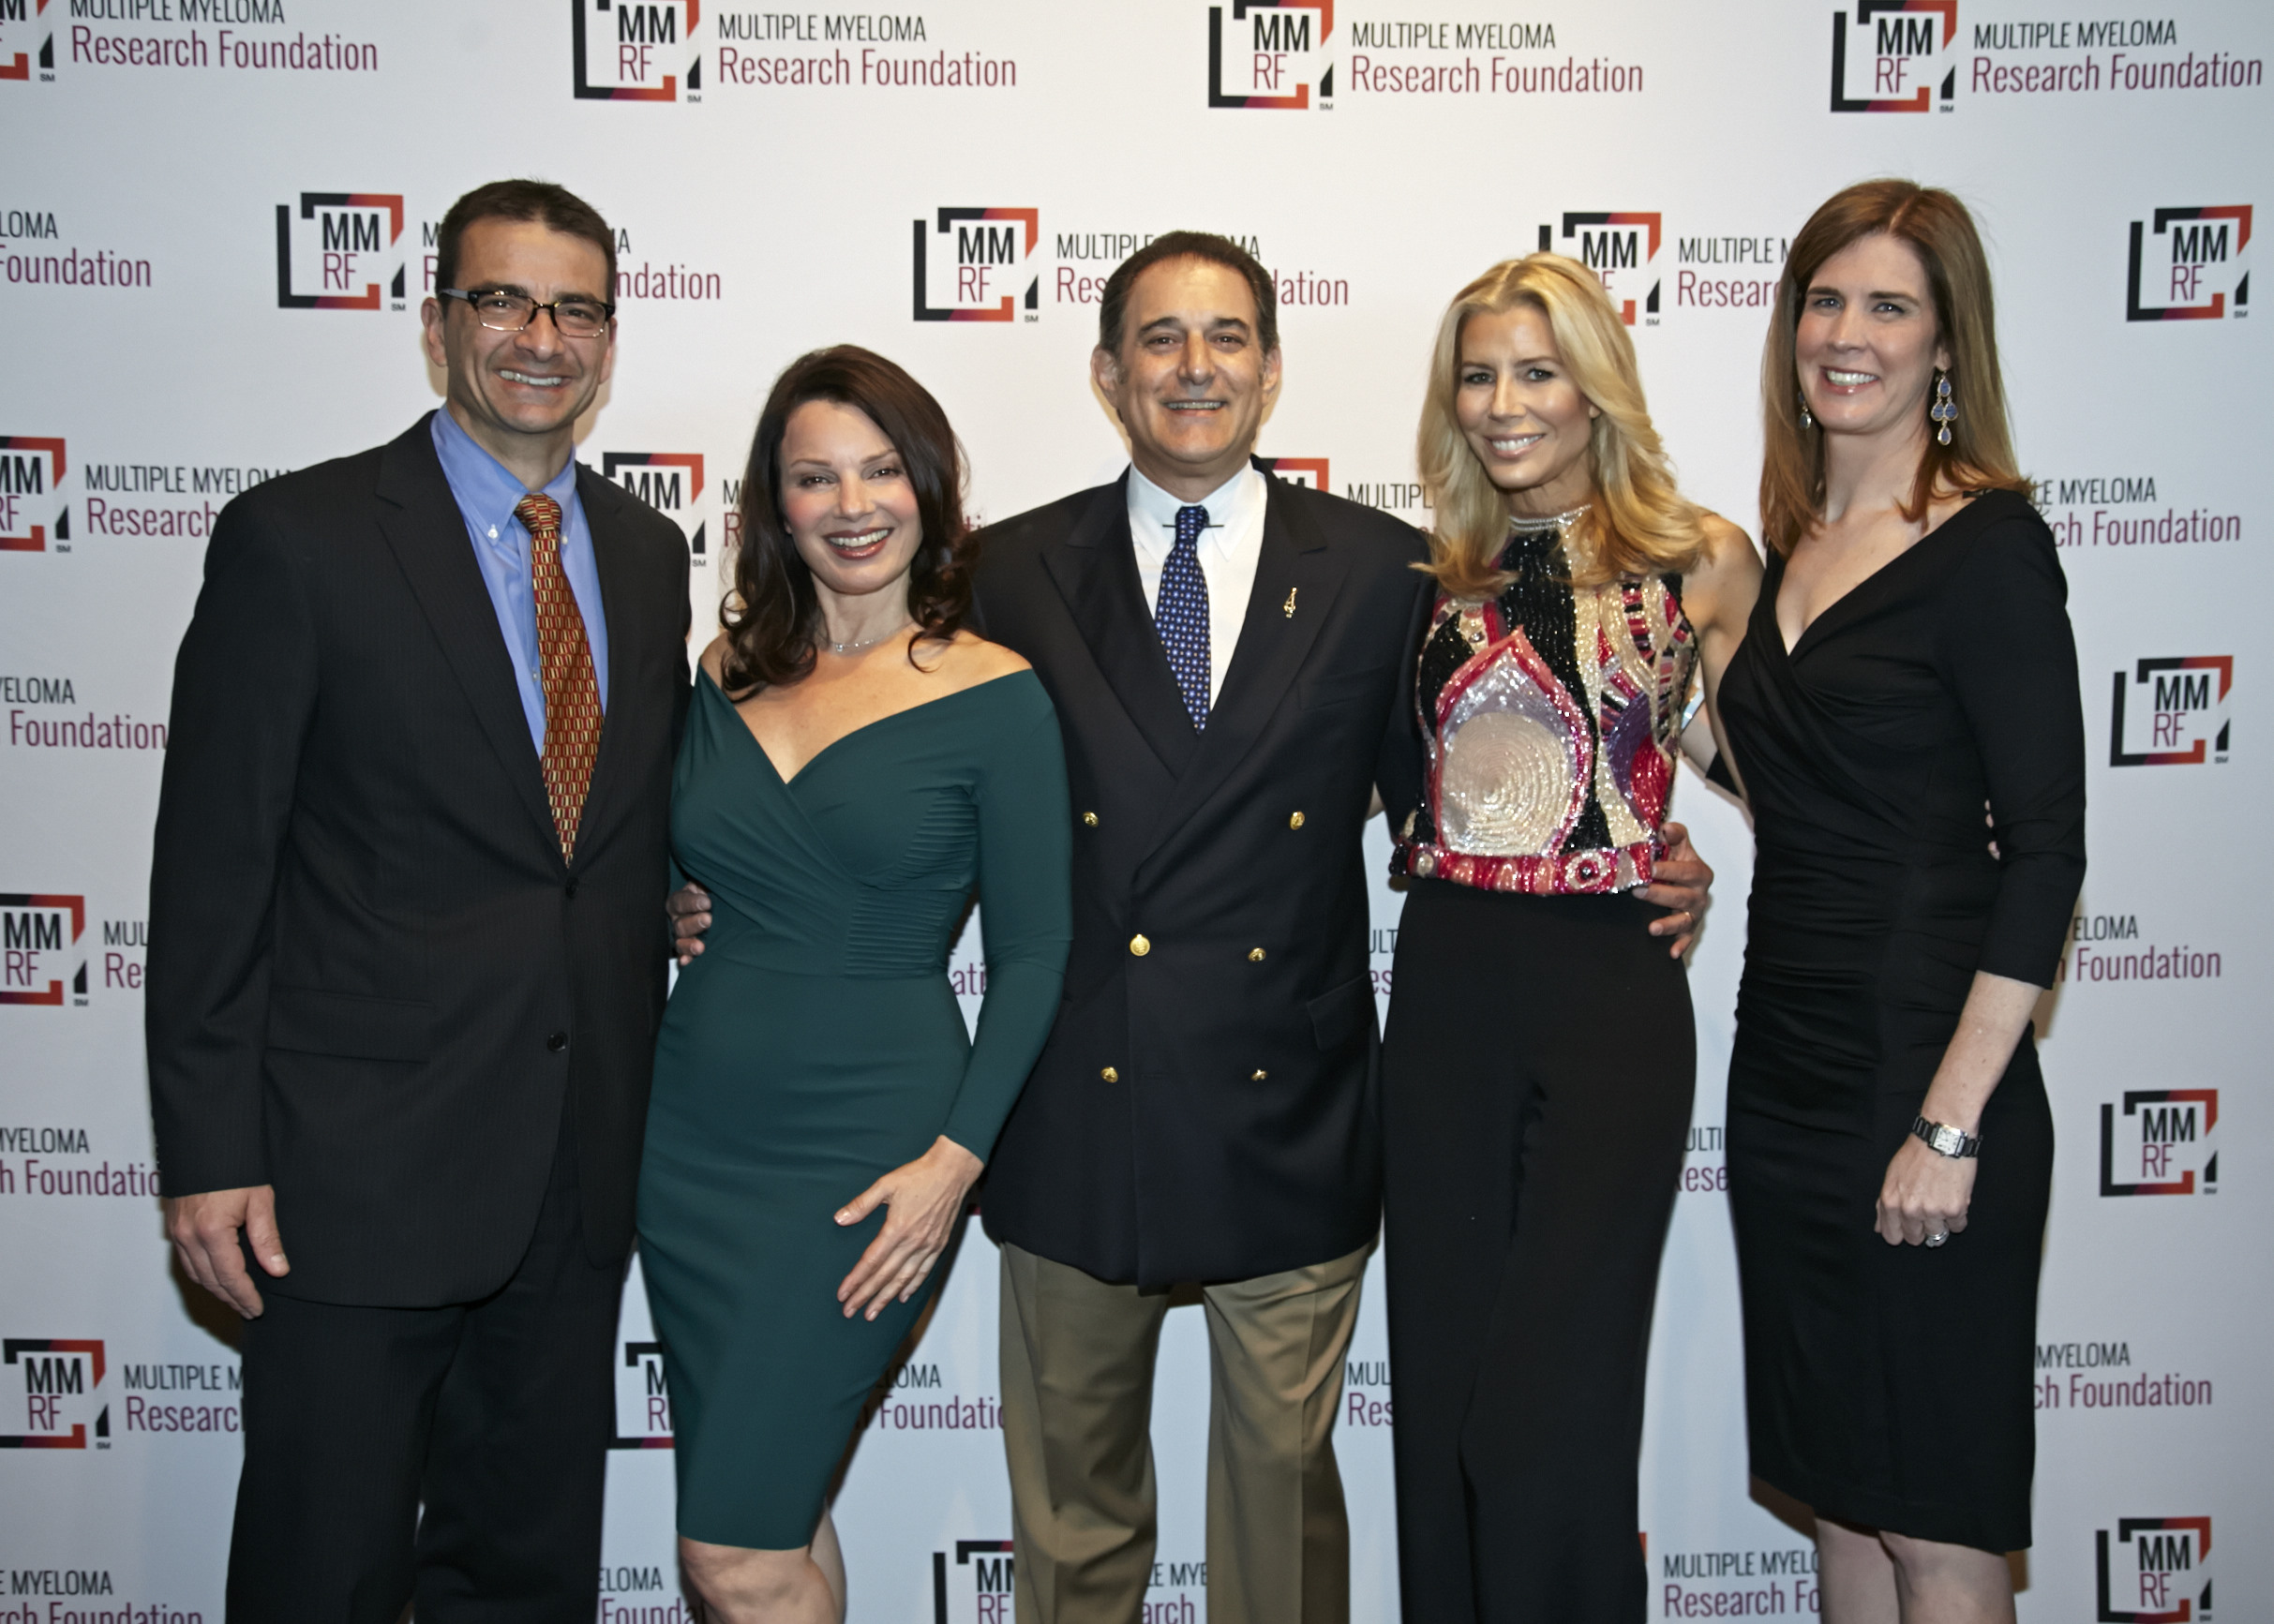 Walter M. Capone of the MMRF, Fran Drescher, Michael Reinert of the MMRF Board of Directors, Aviva Drescher and Anne Quinn Young of the MMRF celebrating at the 2014 MMRF Laugh for Life: New York.